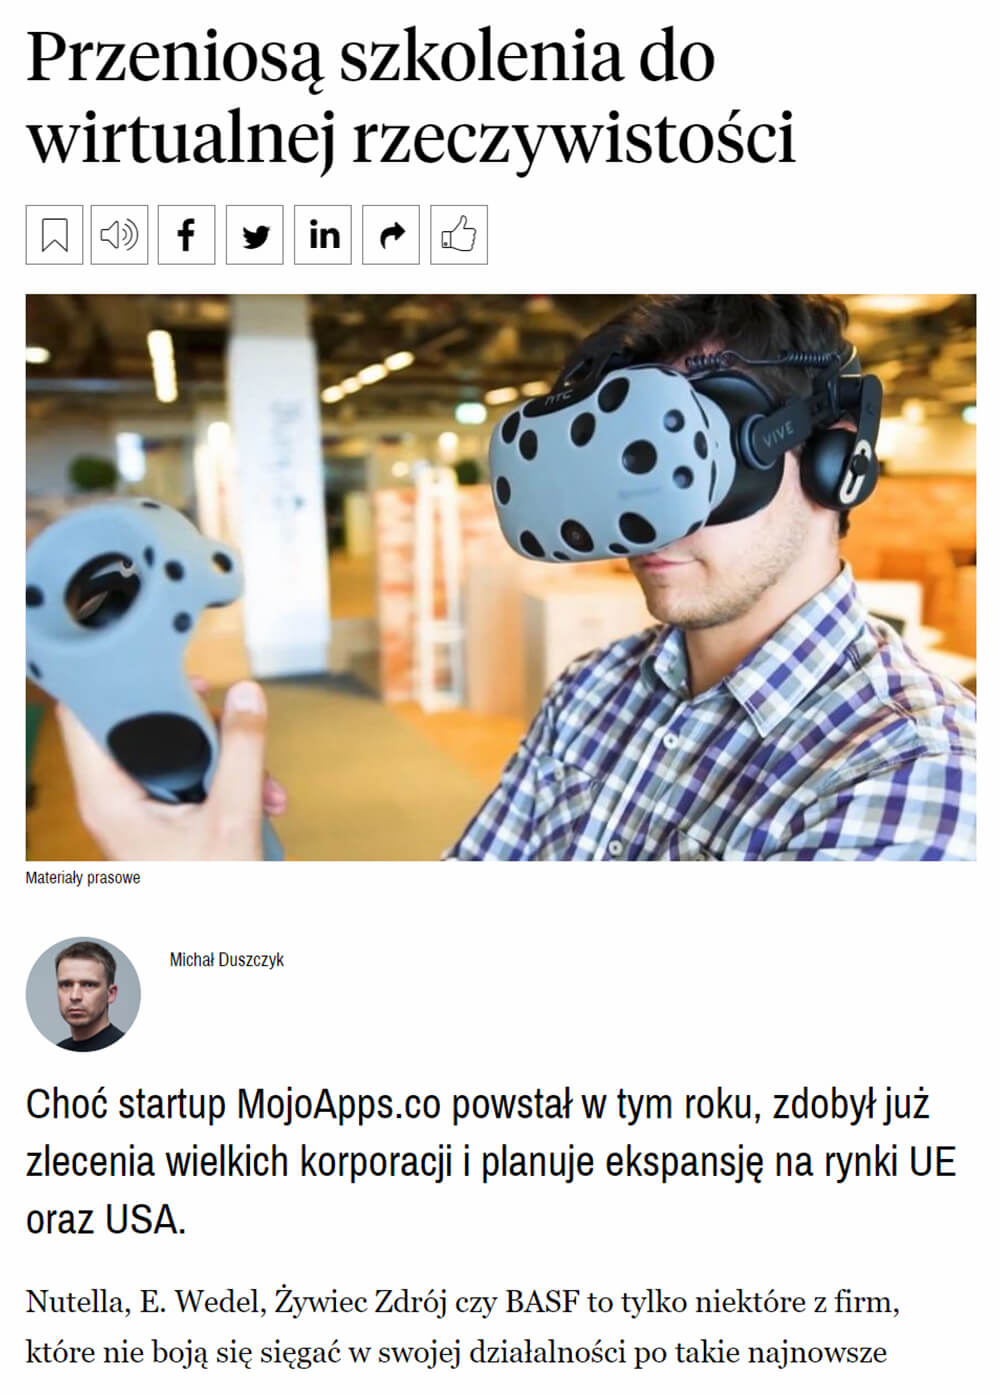 media article about MojoApps